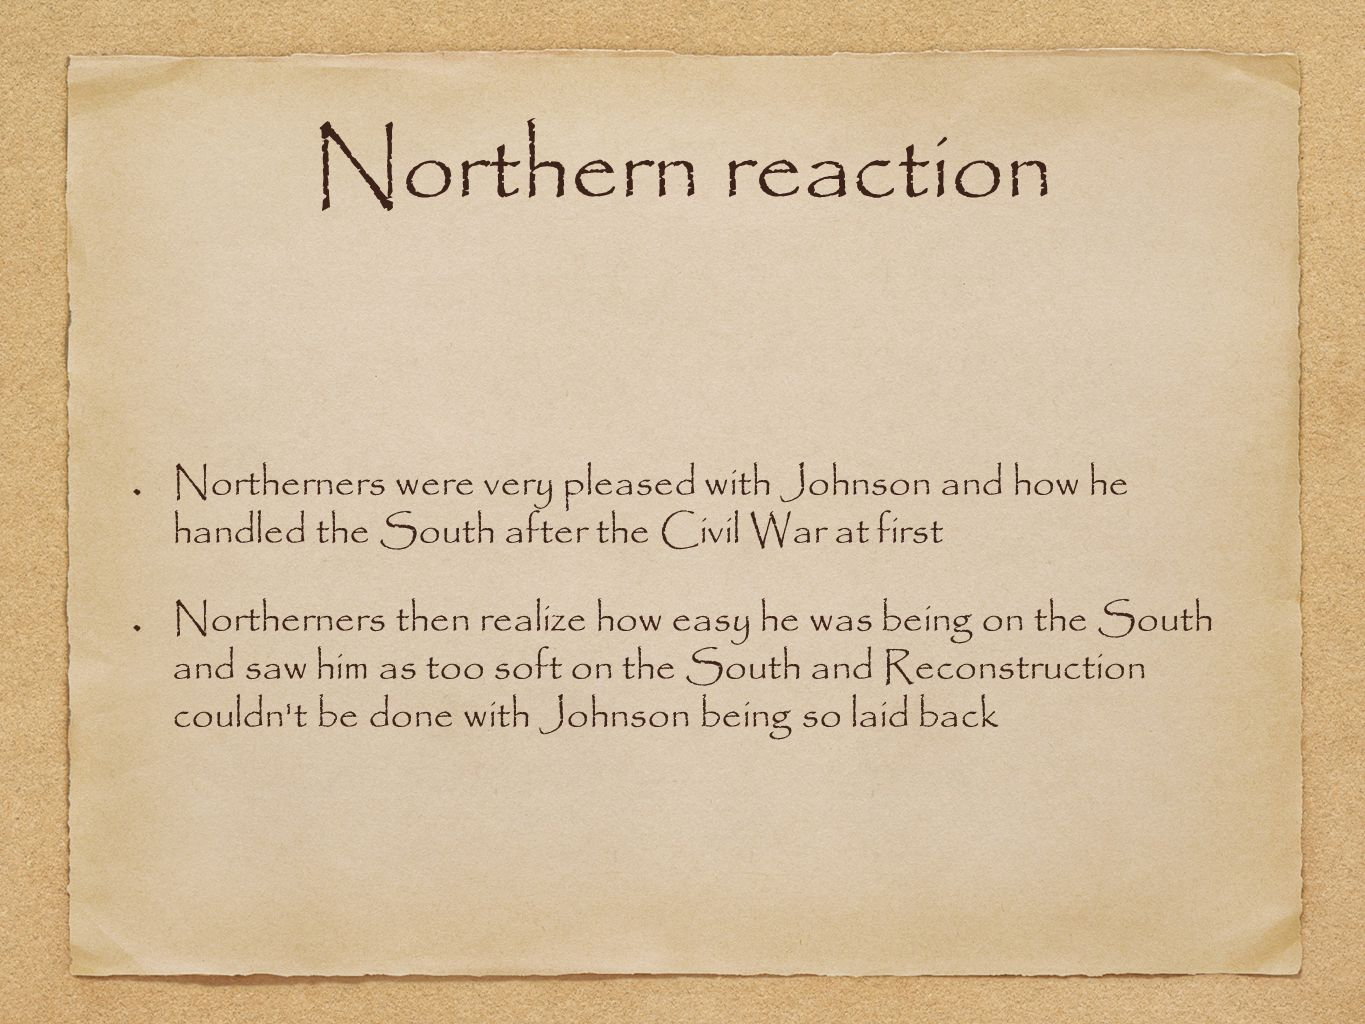 Northern reaction Northerners were very pleased with Johnson and how he handled the South after the Civil War at first Northerners then realize how easy he was being on the South and saw him as too soft on the South and Reconstruction couldn t be done with Johnson being so laid back